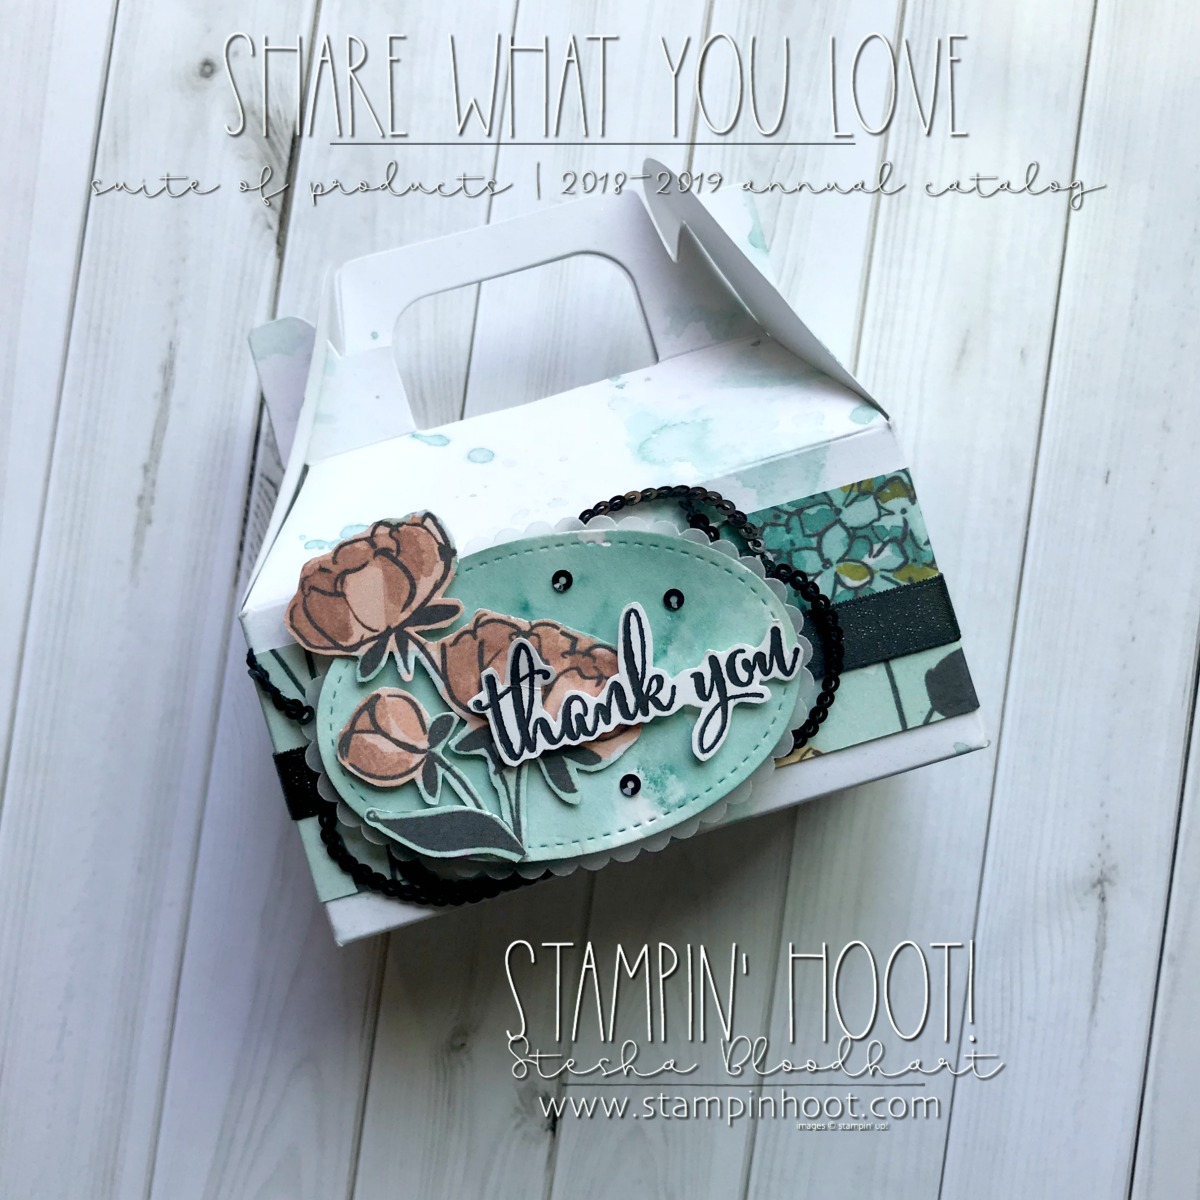 Share What You Love Early Release by Stampin' Up! Mini Gable Box Thank You Created by Stesha Bloodhart, Stampin' Hoot! for #OnStage2018 Milwaukee Display Board Samples #steshabloodhart #stampinhoot